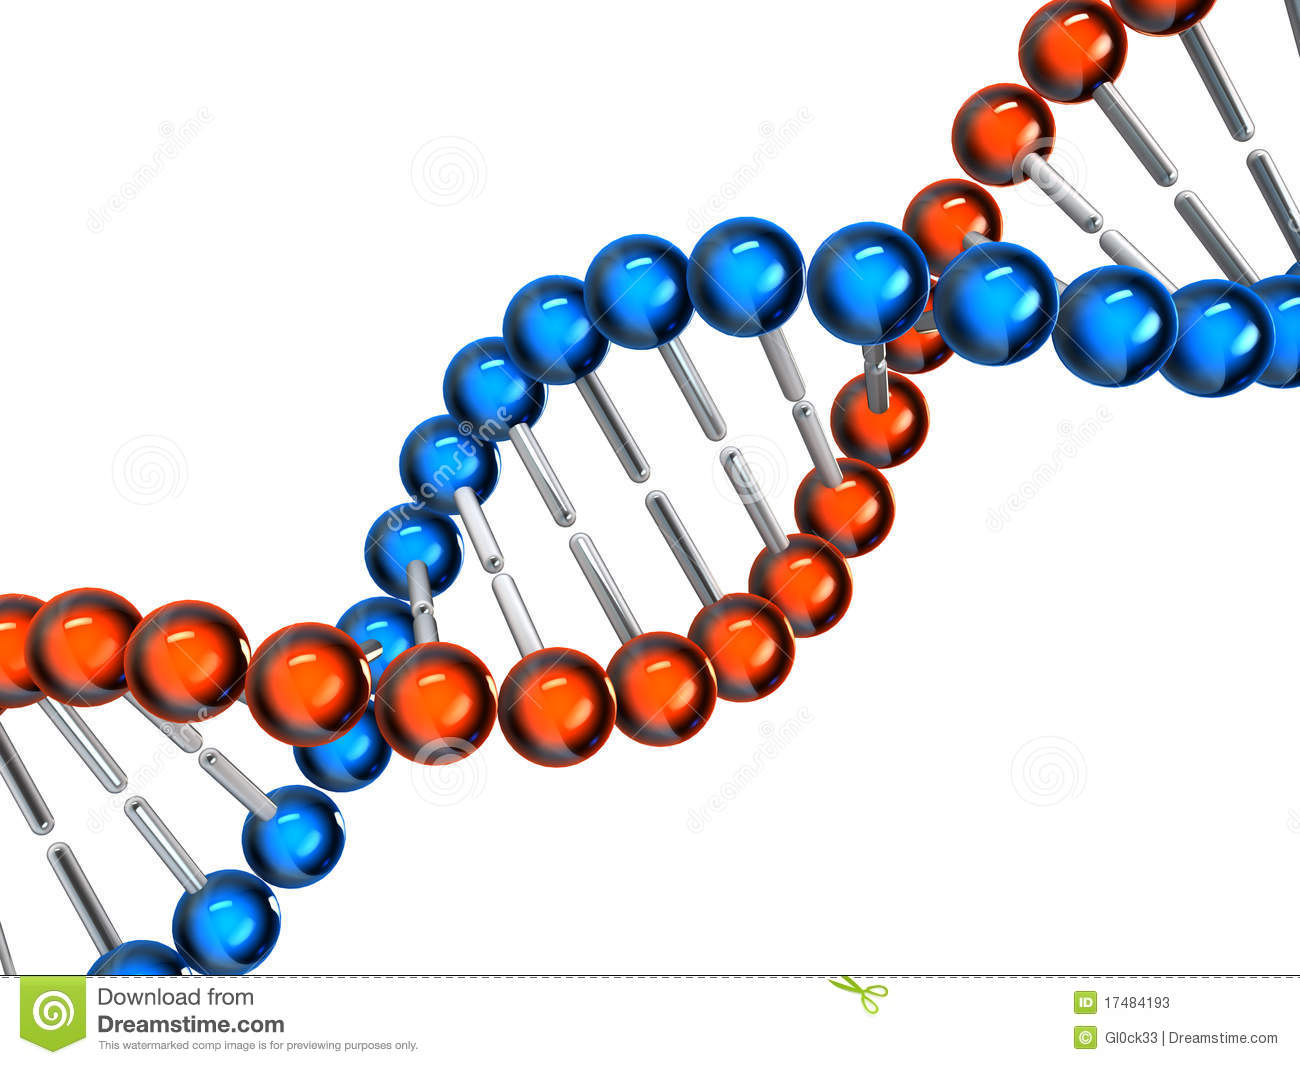 3d model of dna on white background.